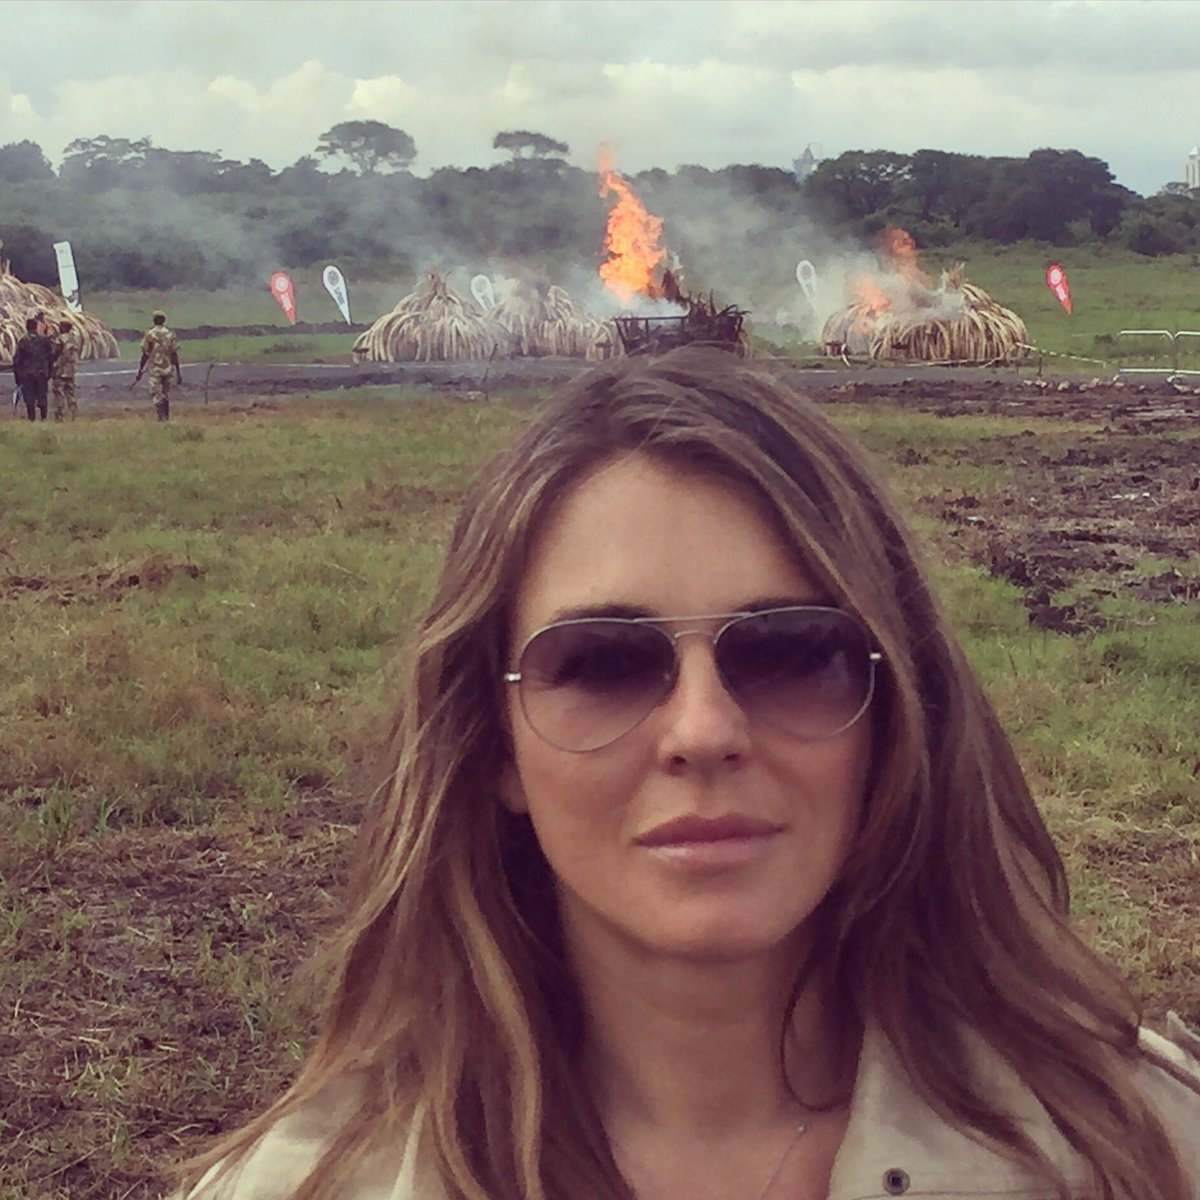 105 tonnes of Ivory & 1.3 tonnes of rhino horn was burnt today. A sickening sight- but one which I fully support. https://t.co/IqIdv0ba3J